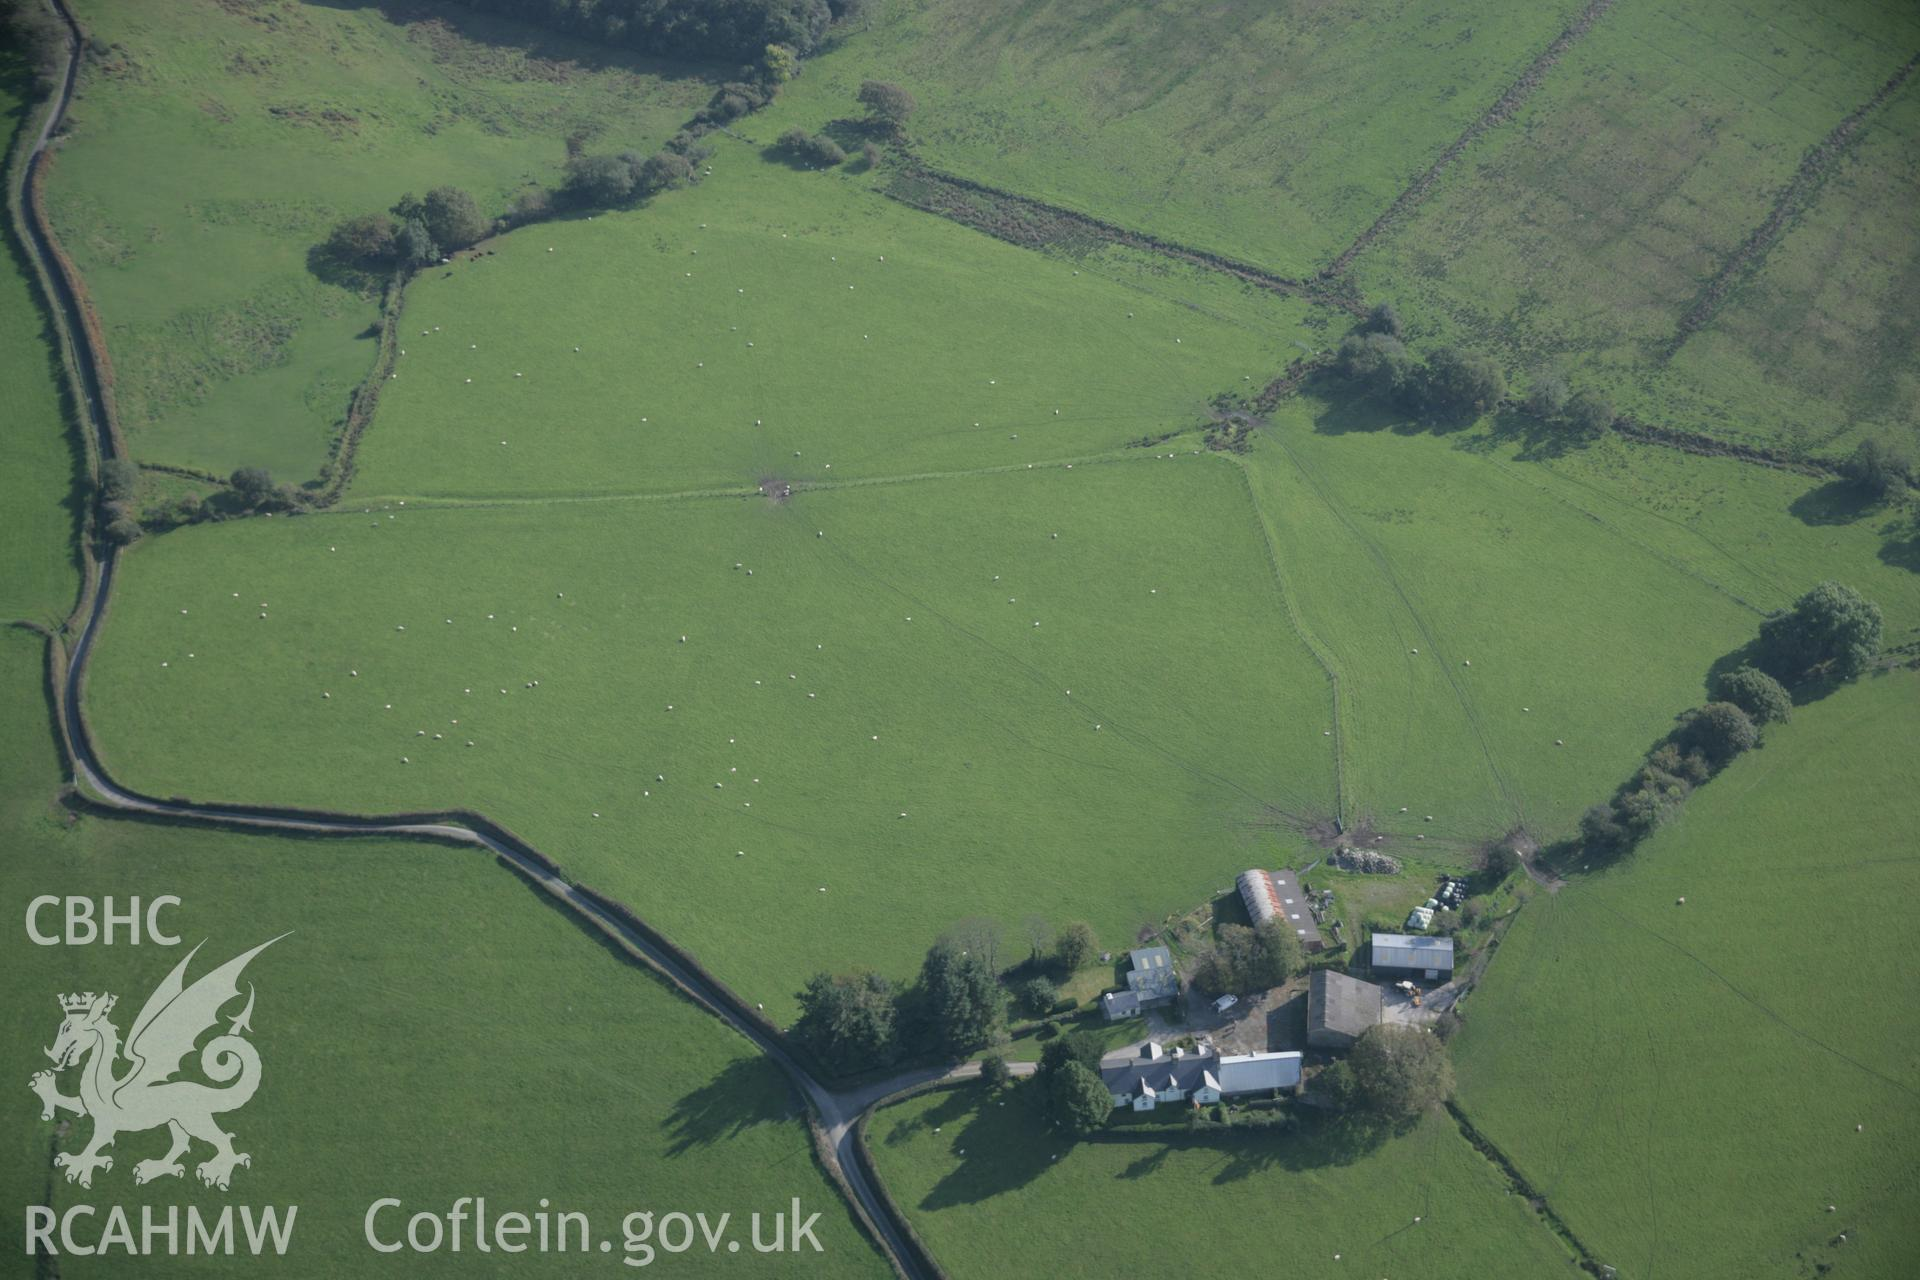 RCAHMW colour oblique aerial photograph of Cefn Caer Roman Fort, Pennal, from the north-west. Taken on 17 October 2005 by Toby Driver